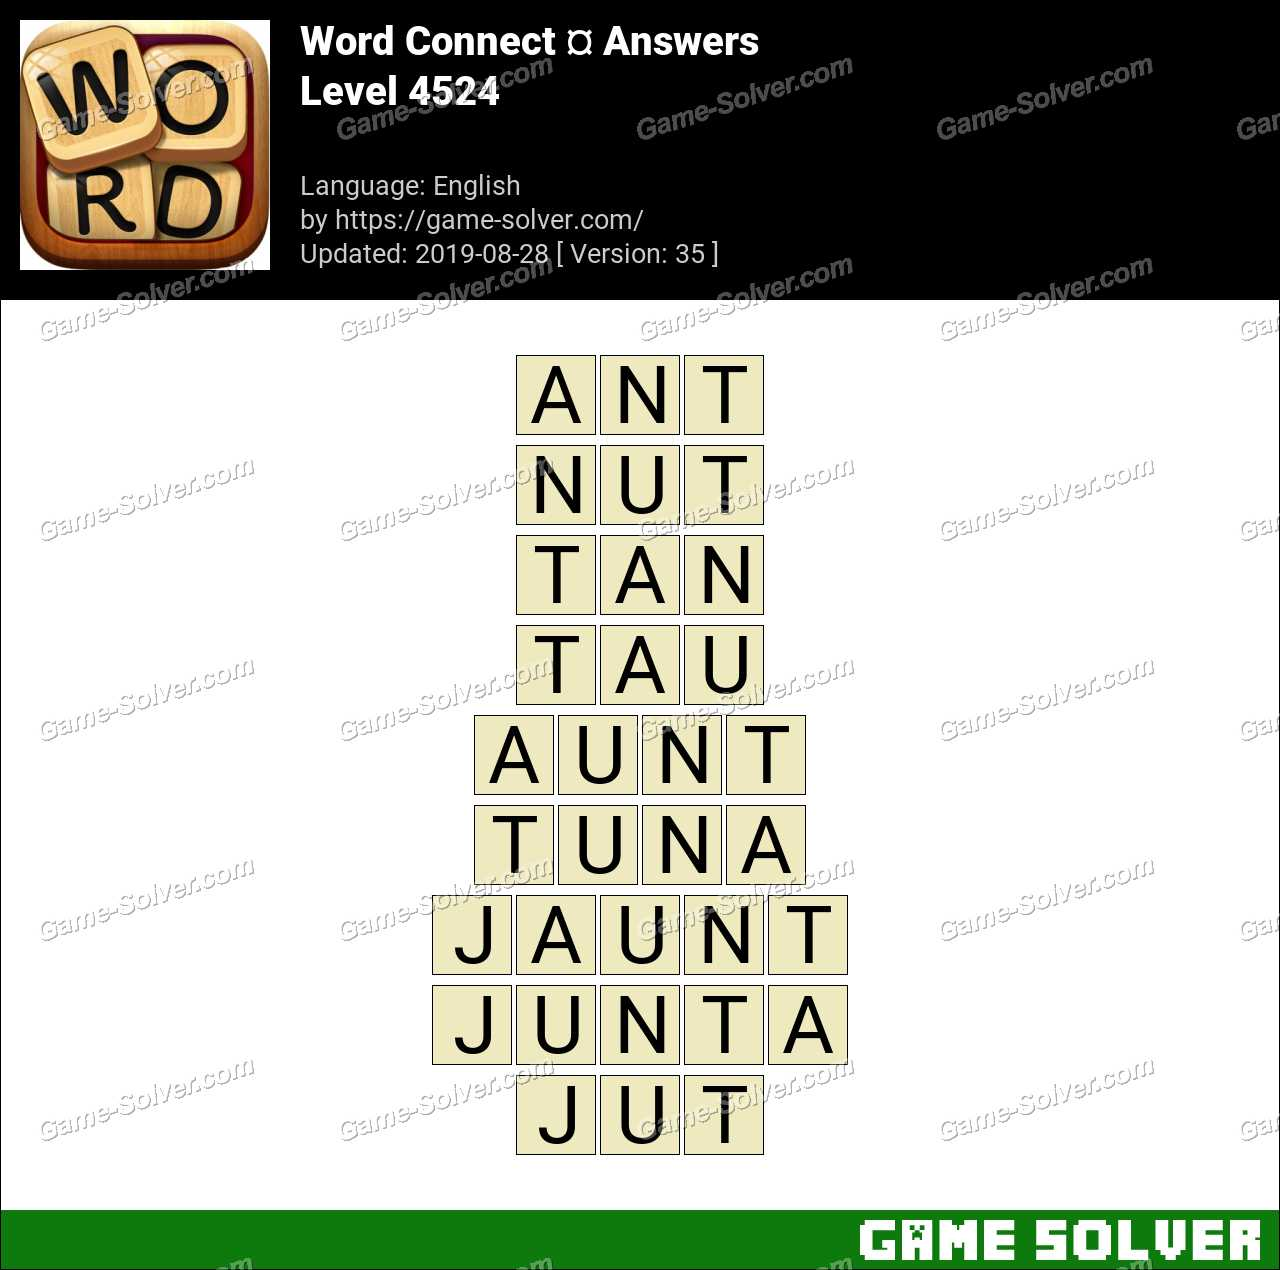 Word Connect Level 4524 Answers